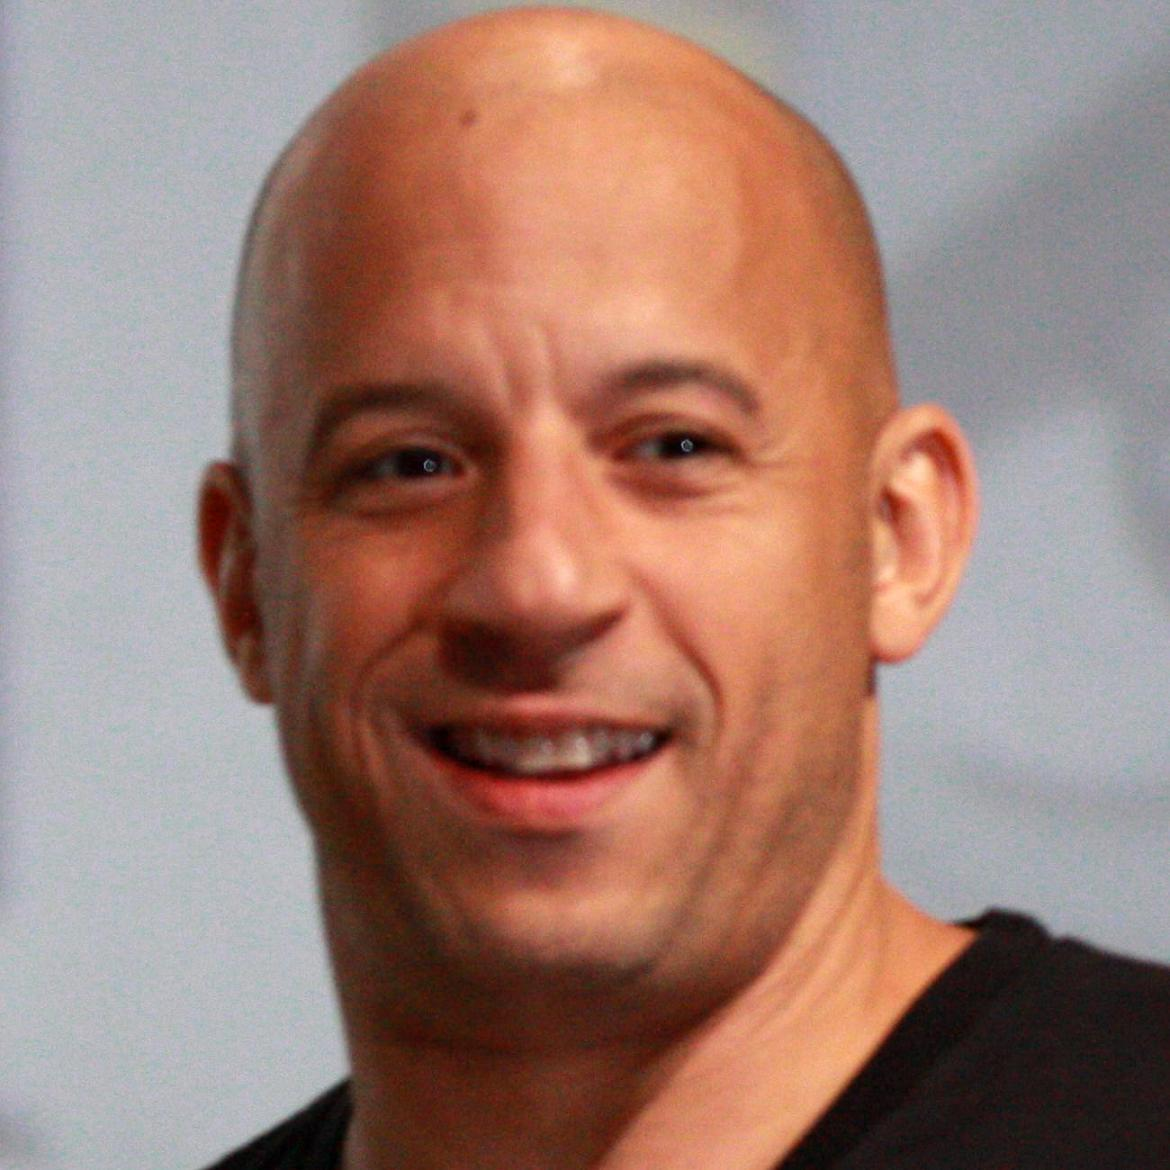 Vin Diesel Bio, Net Worth, Facts